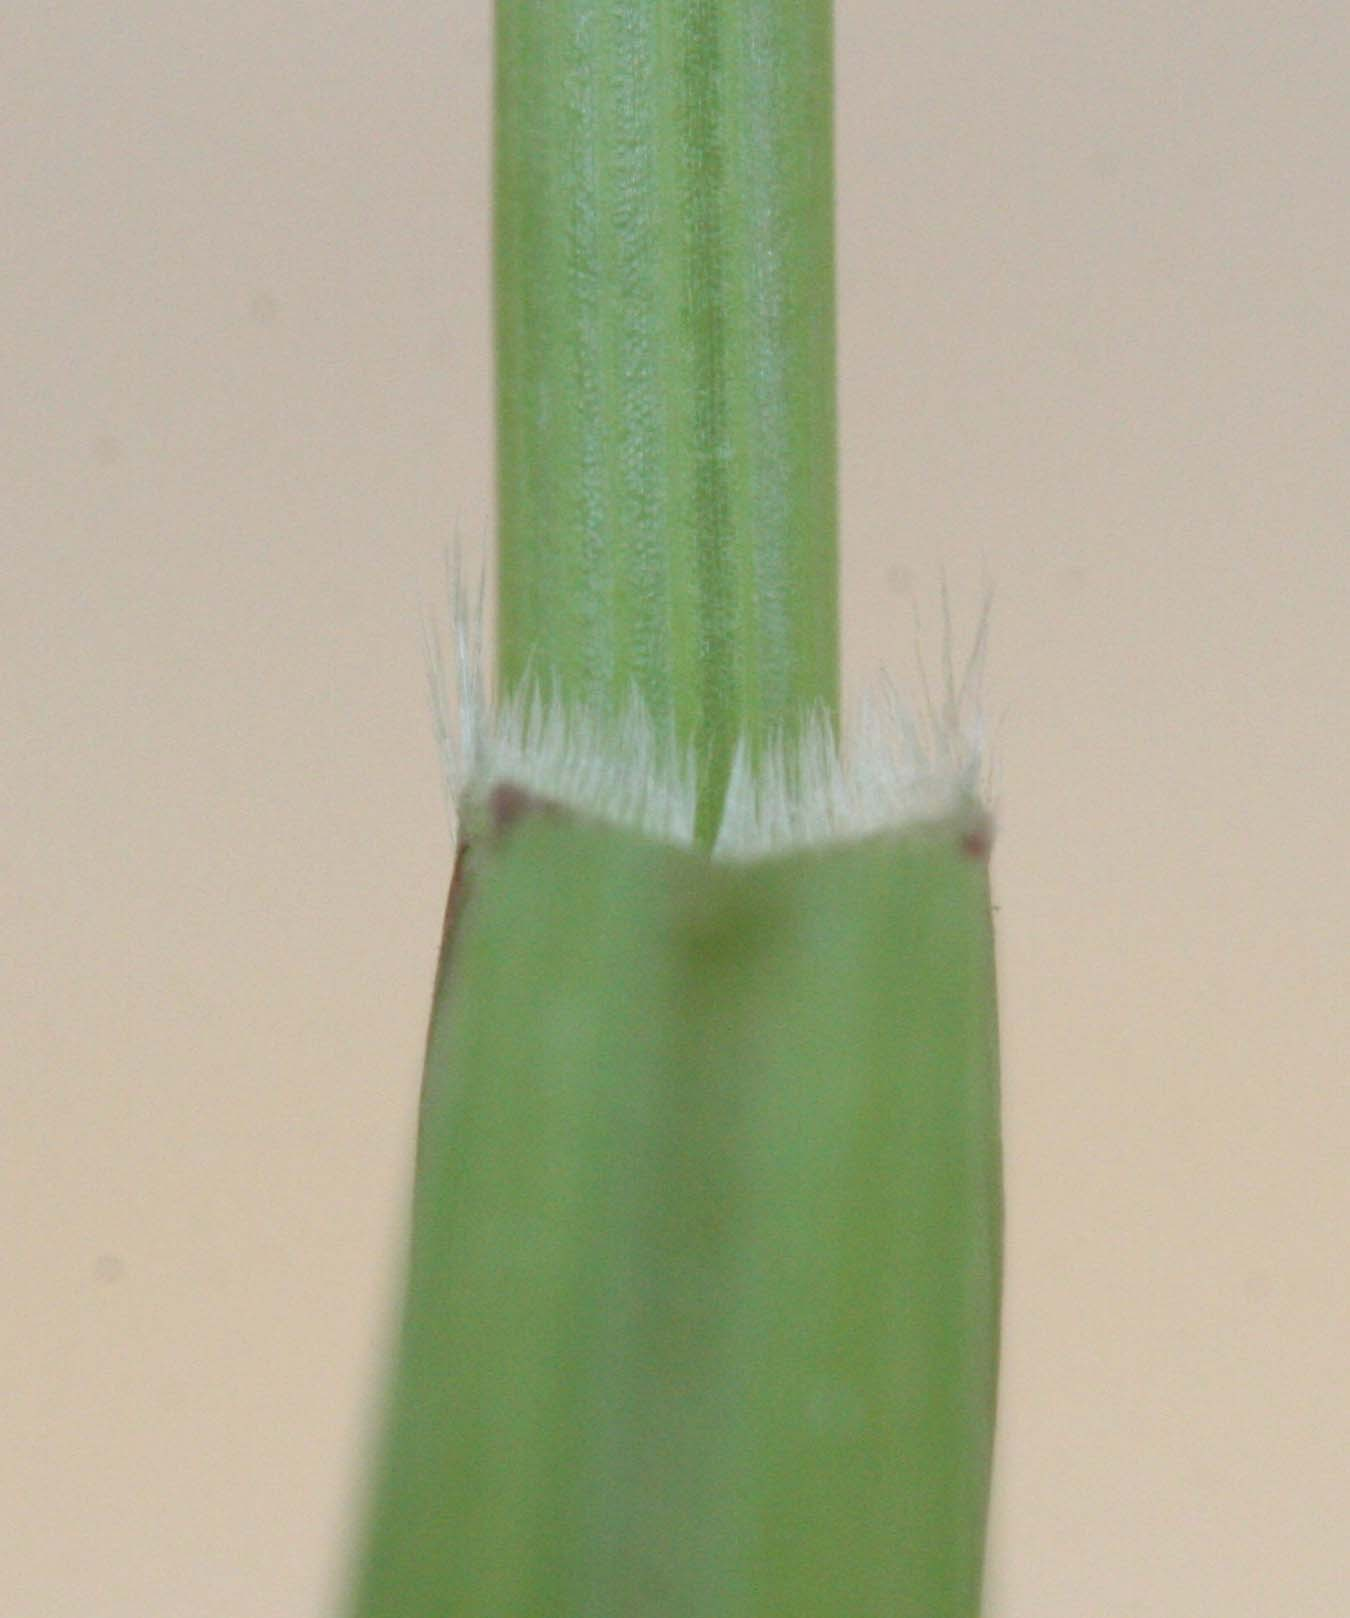 Figure 2. A ligule is a thin membranous sheath that occurs at the junction between the leaf and stem.  The foxtails all have a ligule that is hair-like.